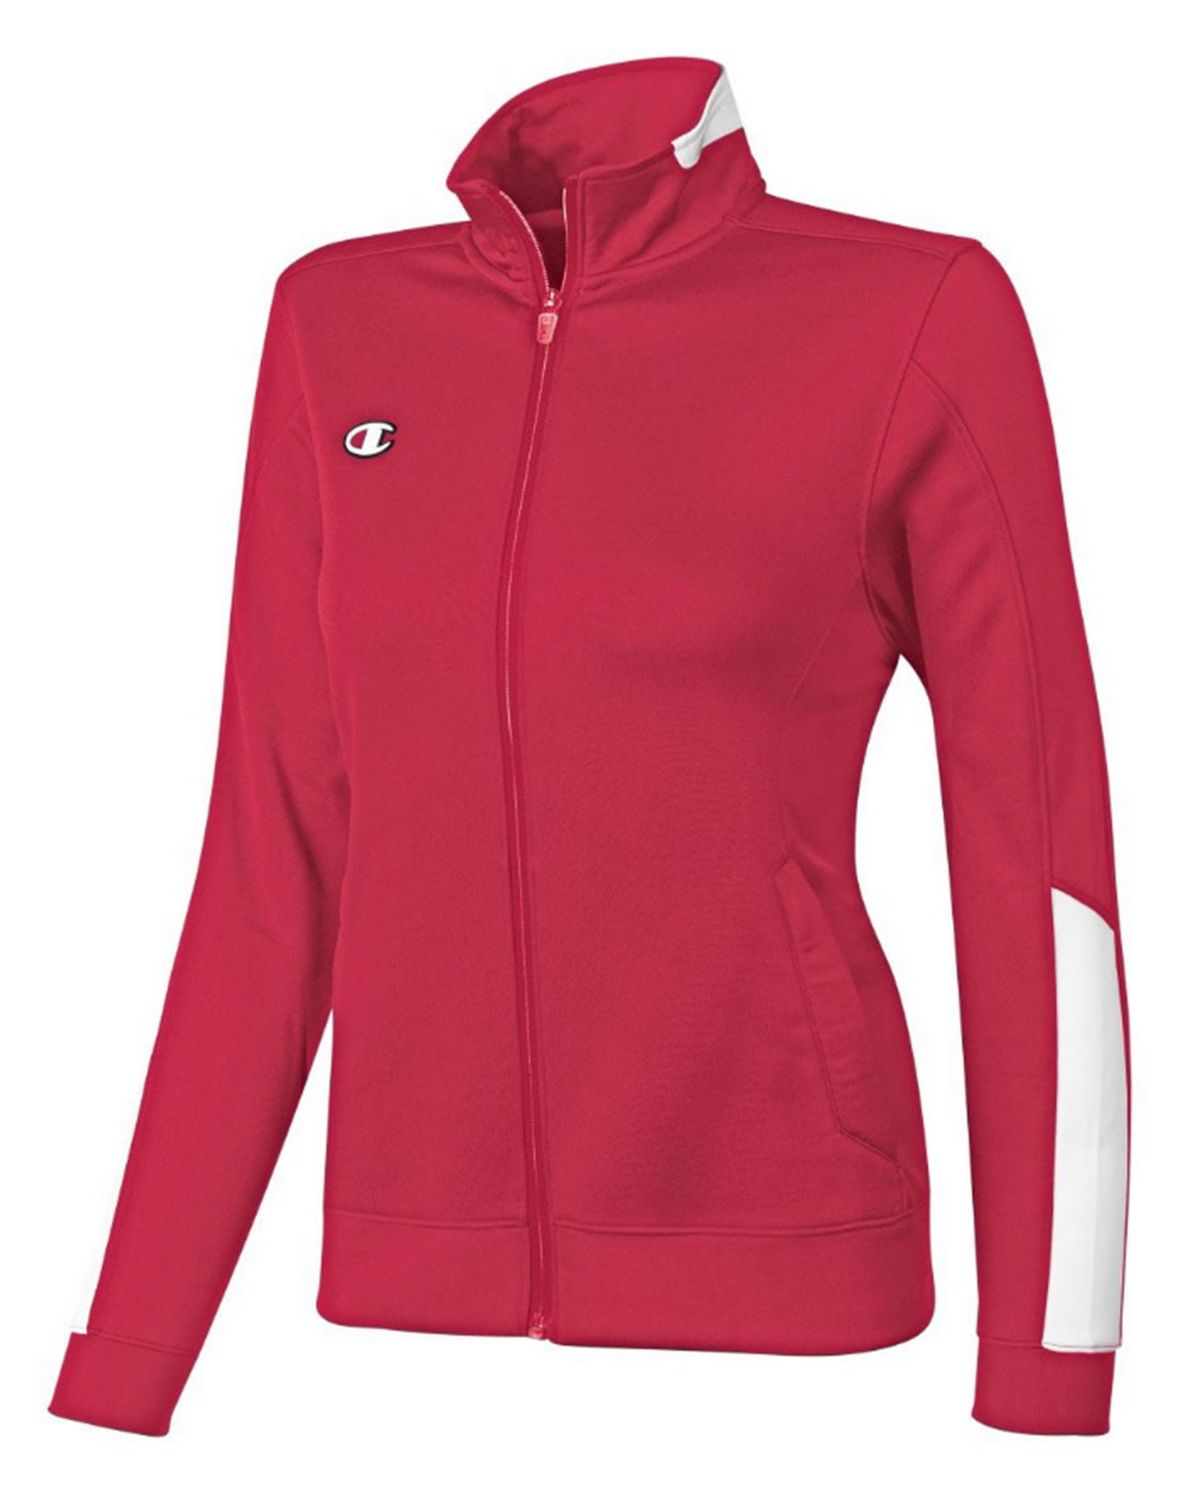 Champion V362 Womens Knit Jacket - Scarlet/White - XS V362